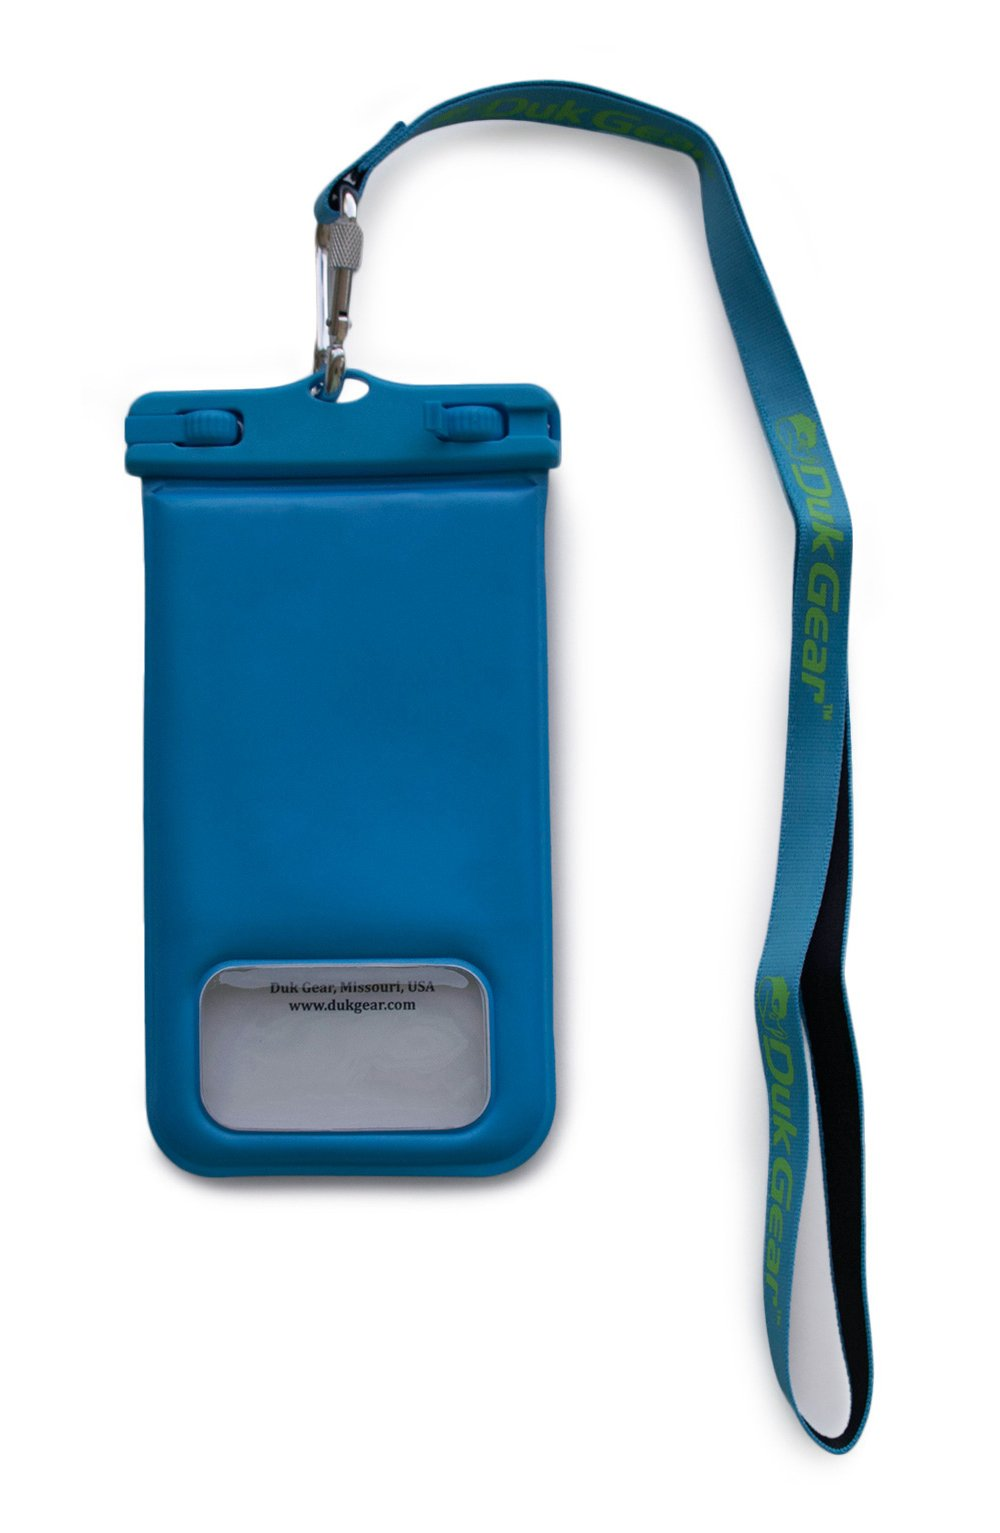 """Duk Gear DUKPouch UNIVERSAL FLOATING & WATERPROOF Cell Phone Case, Pouch, Compatible with iPhone 6, 7, X, Samsung Galaxy, Motorola, Droid, Google, Phones up to 6"""", Money, ID, Keys & more! (Blue)"""